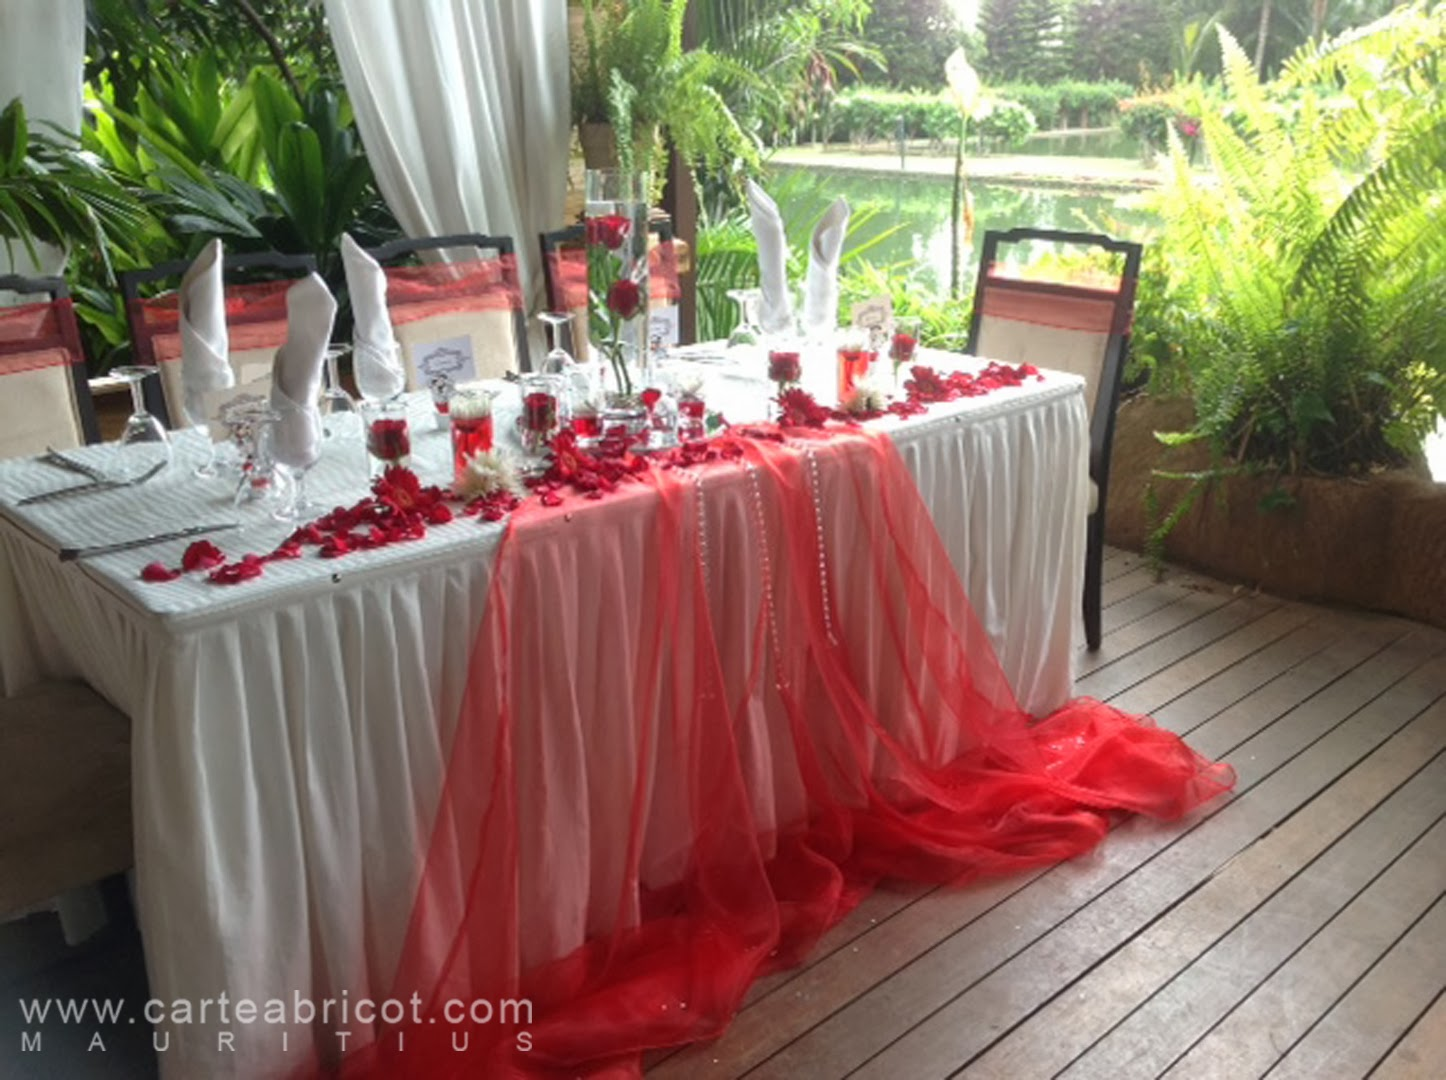 mariage en rouge et blanc carte abricot wedding planner. Black Bedroom Furniture Sets. Home Design Ideas